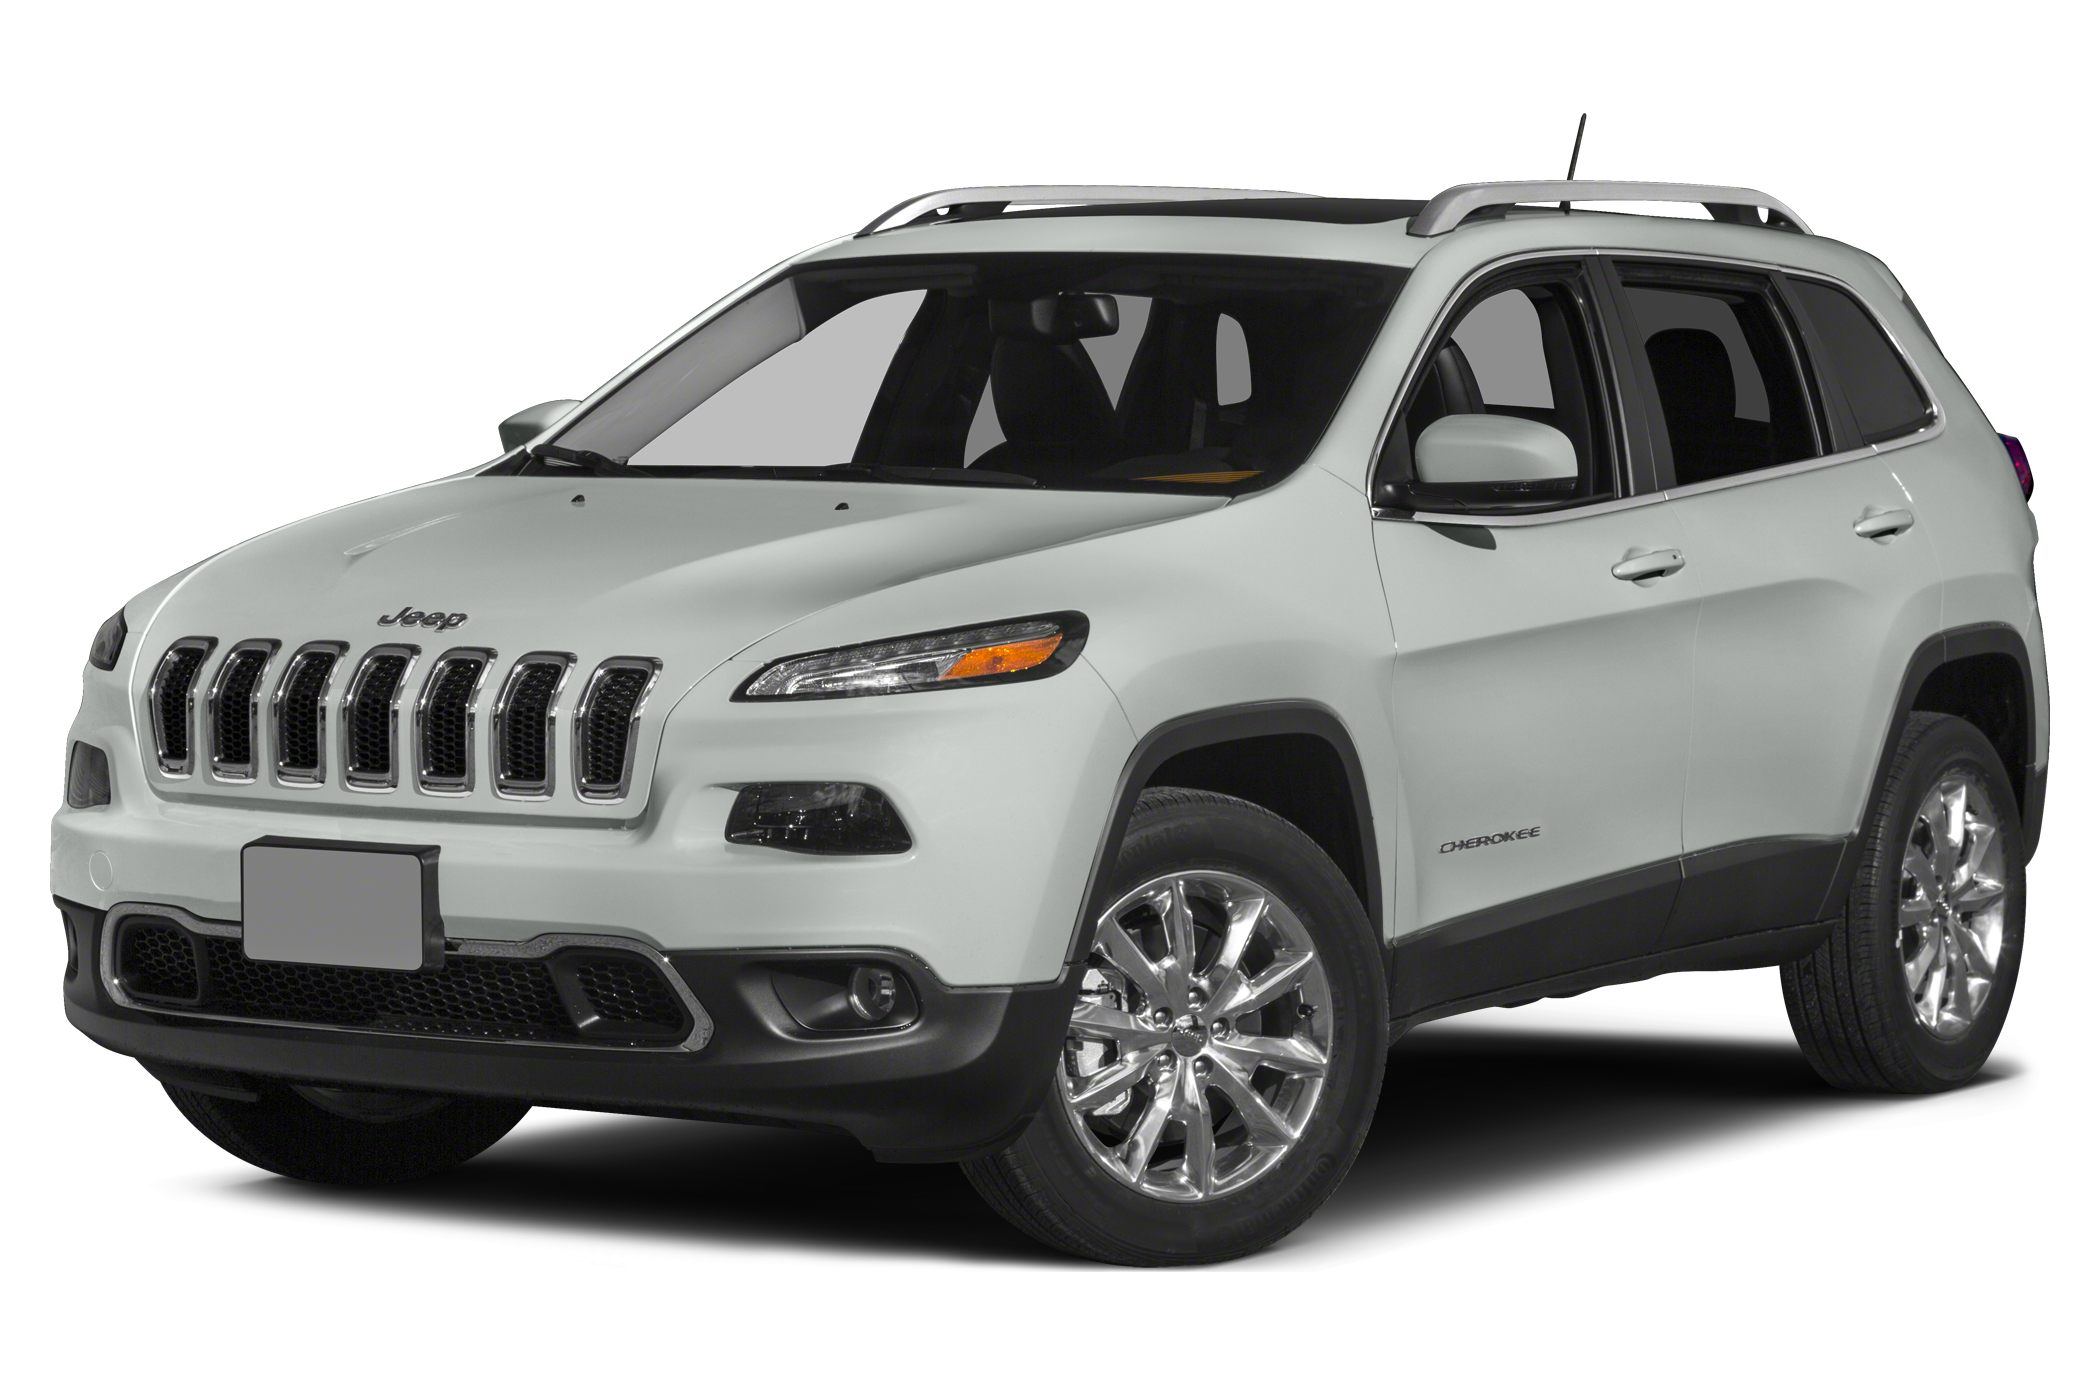 2015 Jeep Cherokee Latitude SUV for sale in Milford for $29,380 with 0 miles